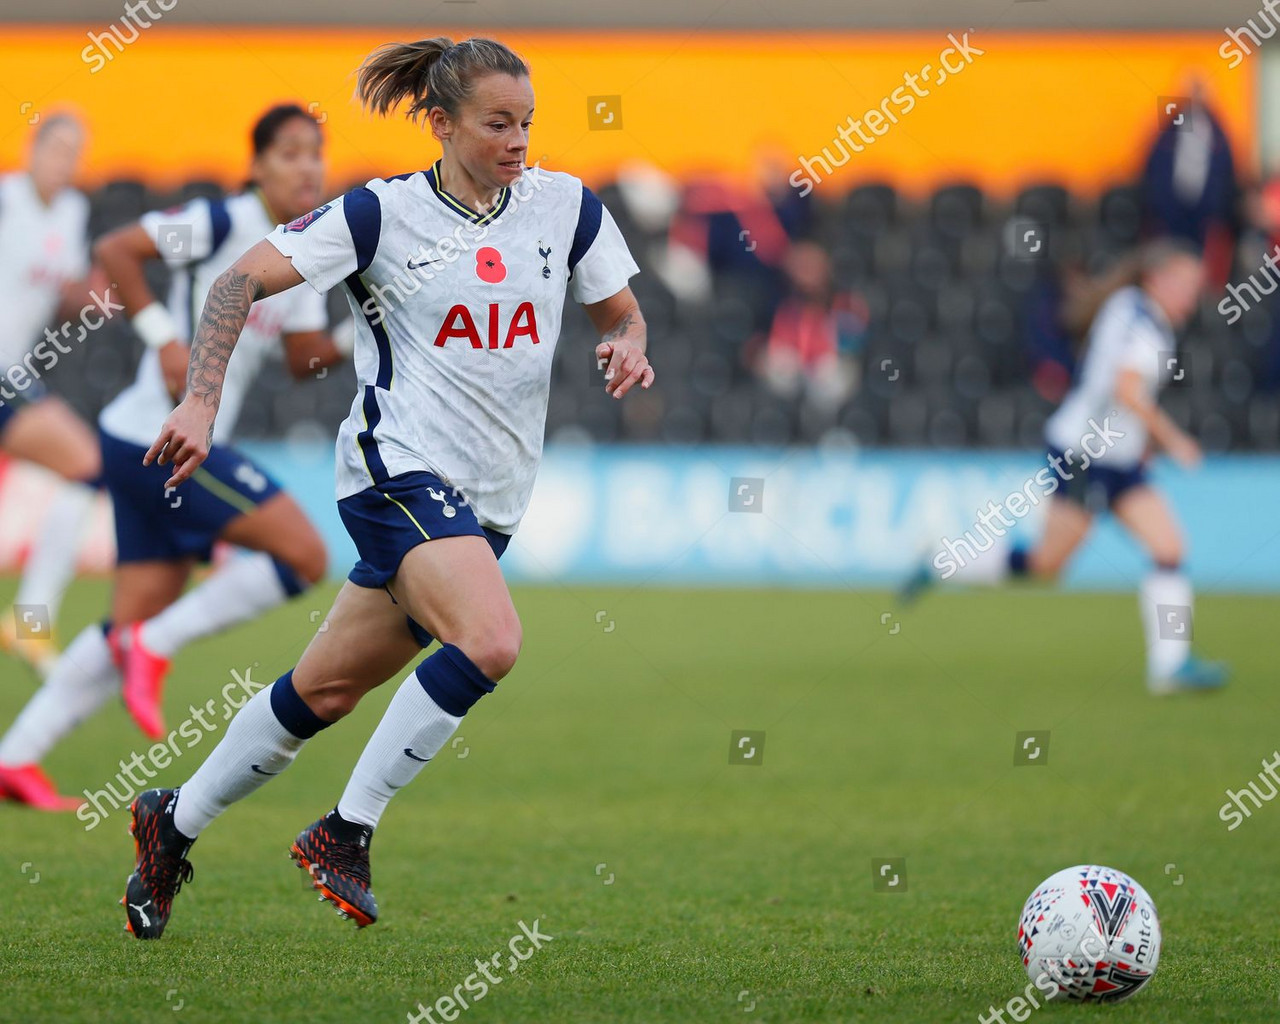 Tottenham Hotspur v Bristol City Women's Super League: Team News, Predicted Line Ups, Ones To Watch, How To Watch